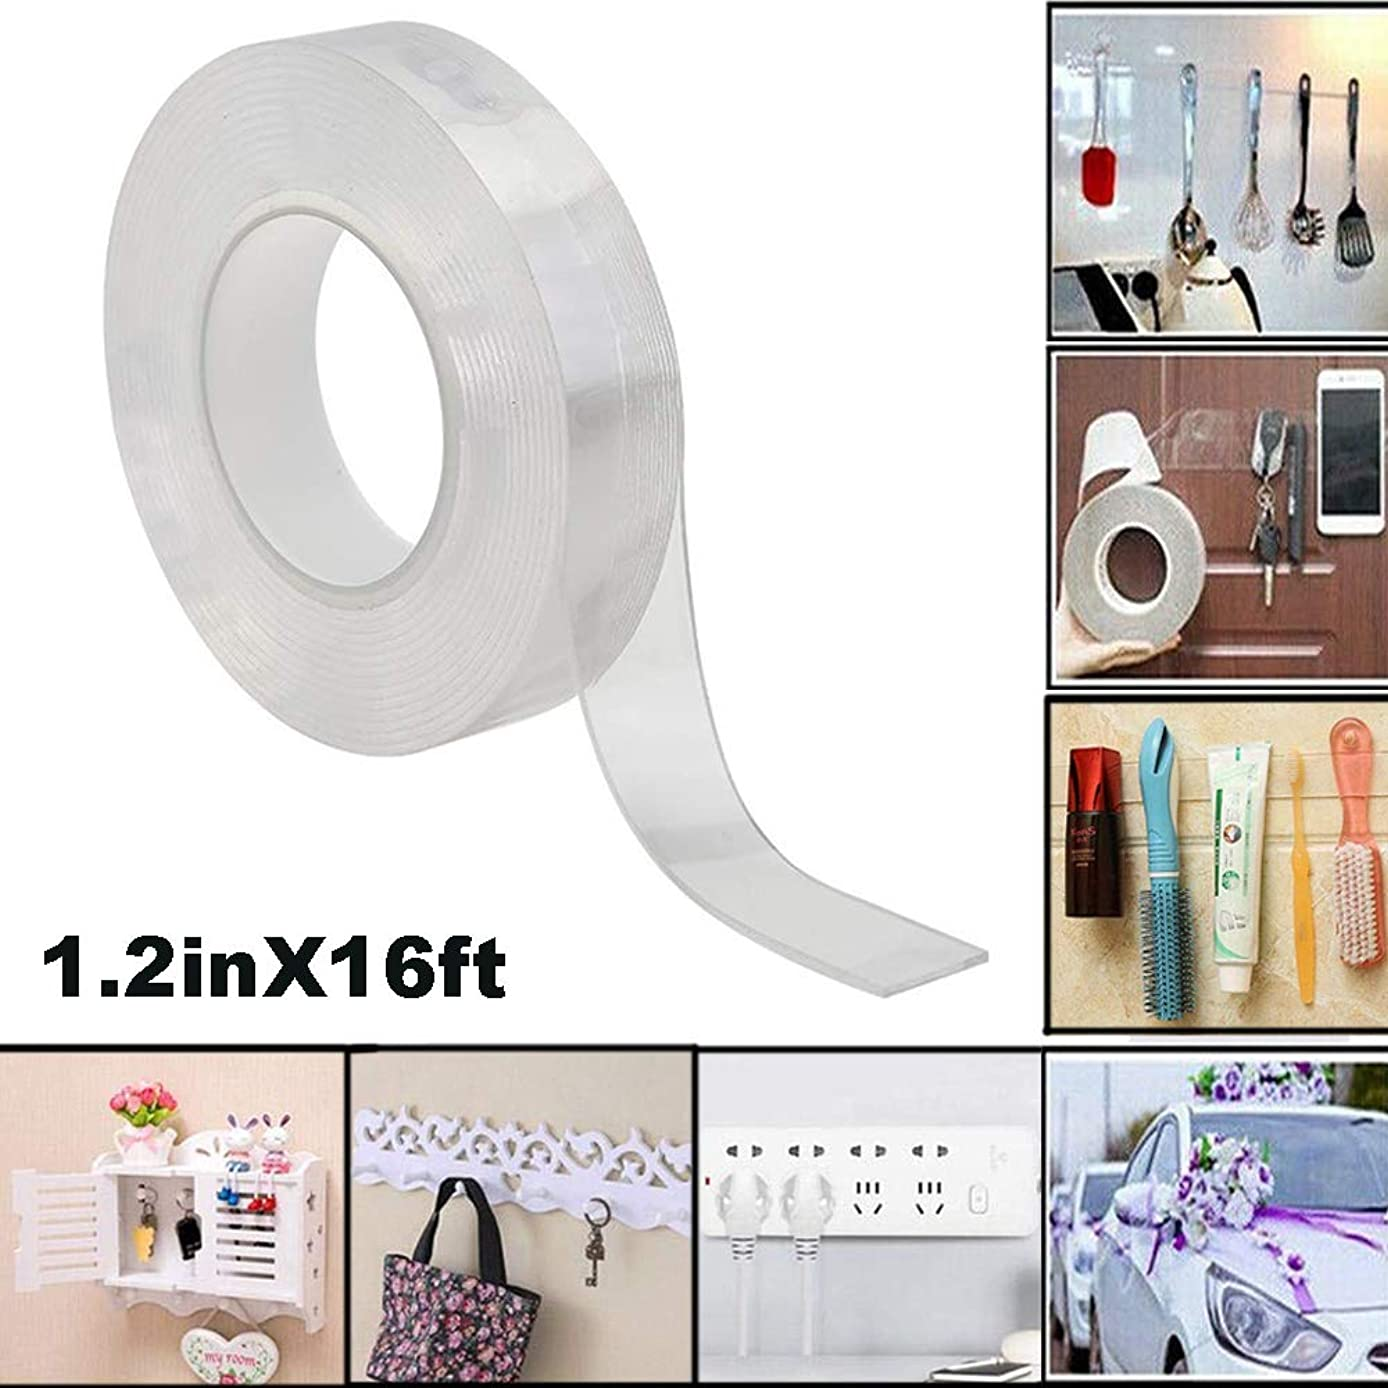 SEAMETAL Traceless Washable Adhesive Tape,Reusable Clear Double Sided Anti-Slip Nano Gel Pads,Removable Sticky Strips Grip10ft (1.2inX16ft)